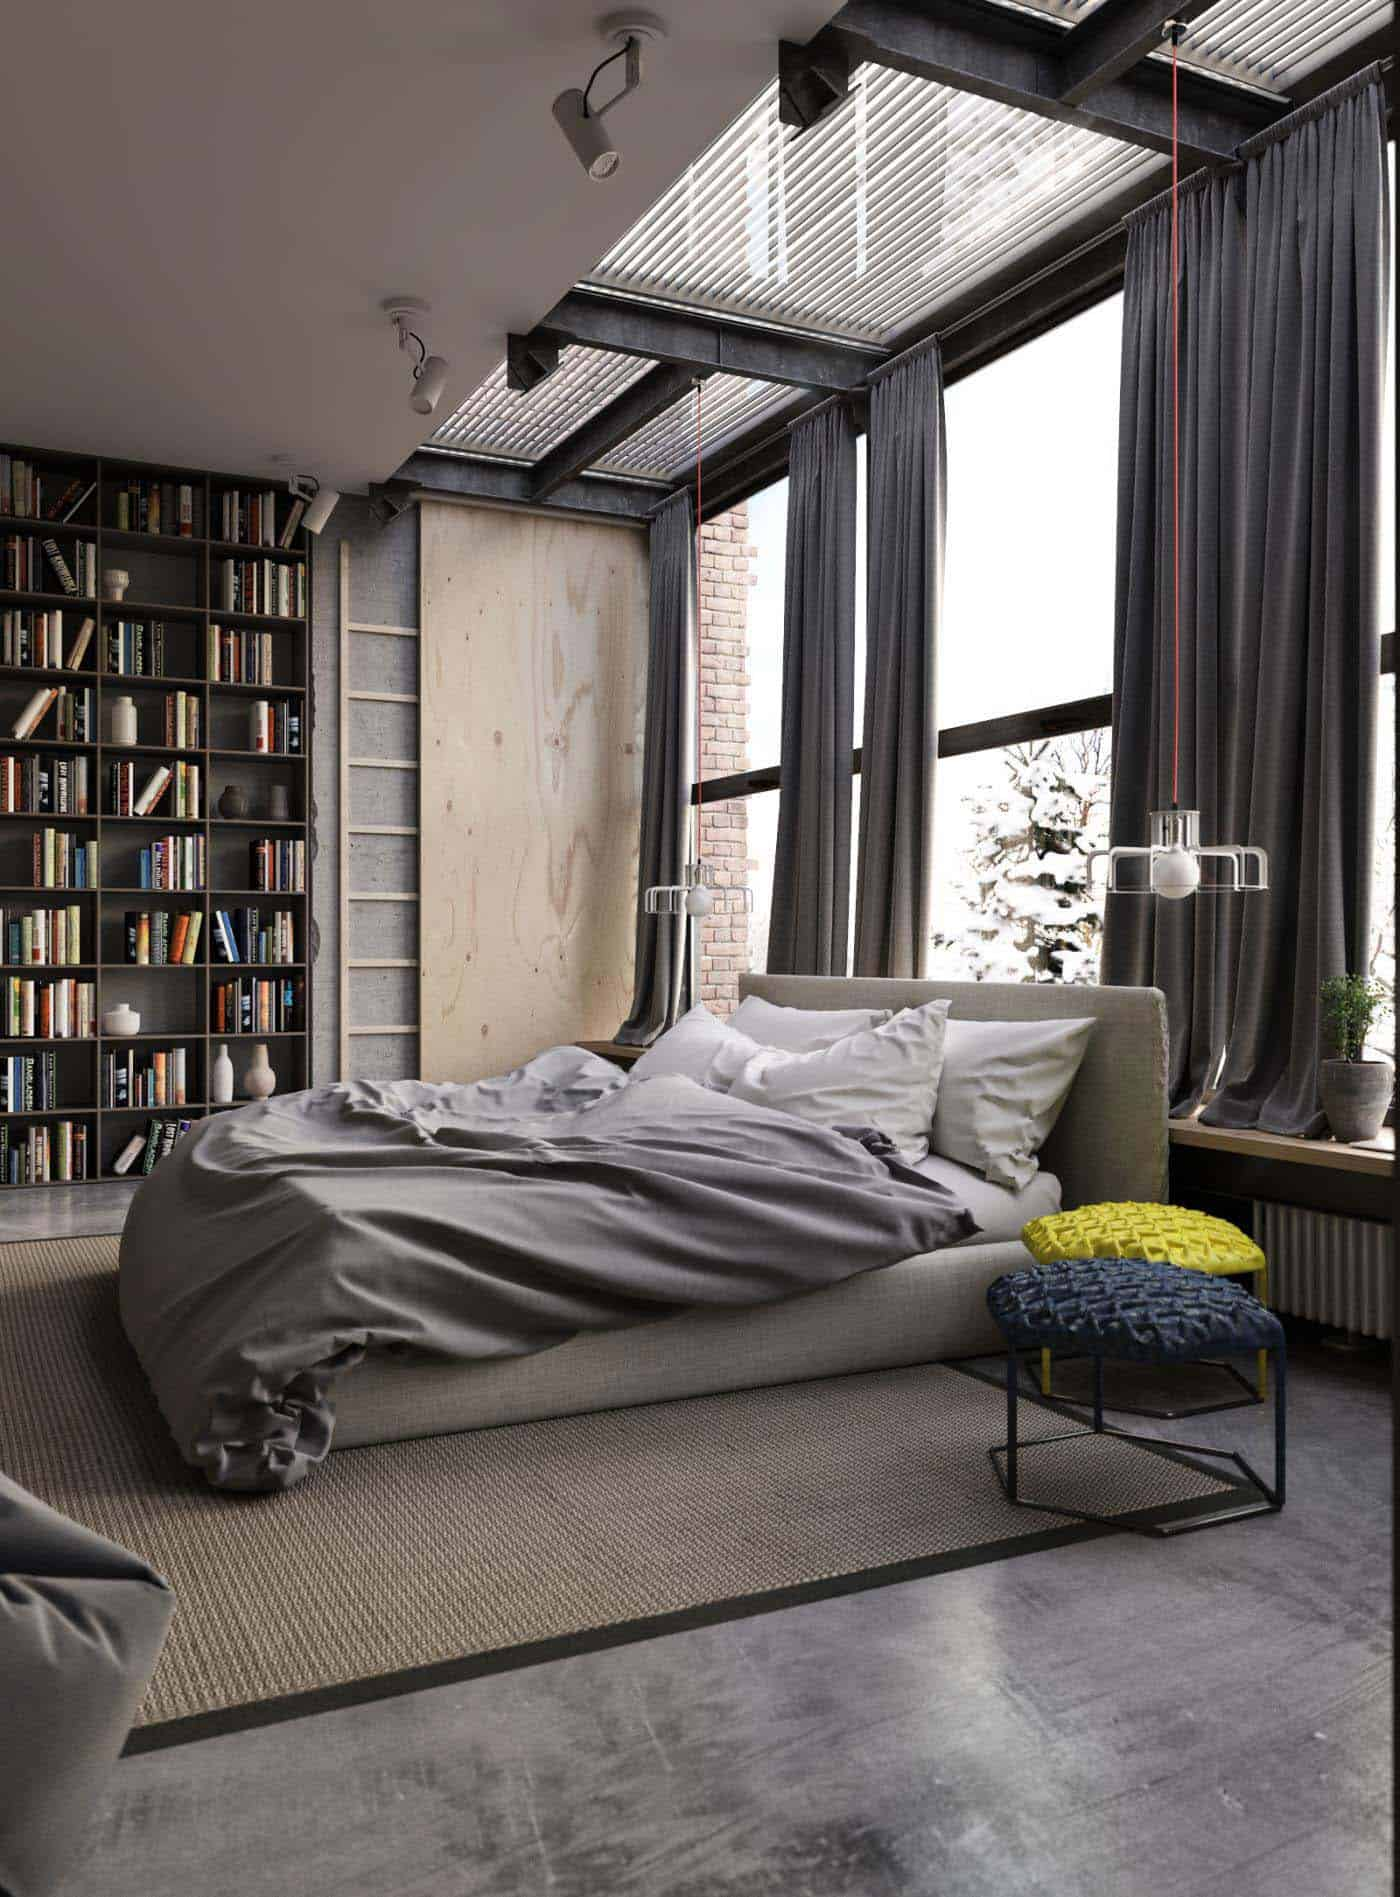 Charmant Industrial Style Bedroom Design Ideas 34 1 Kindesign